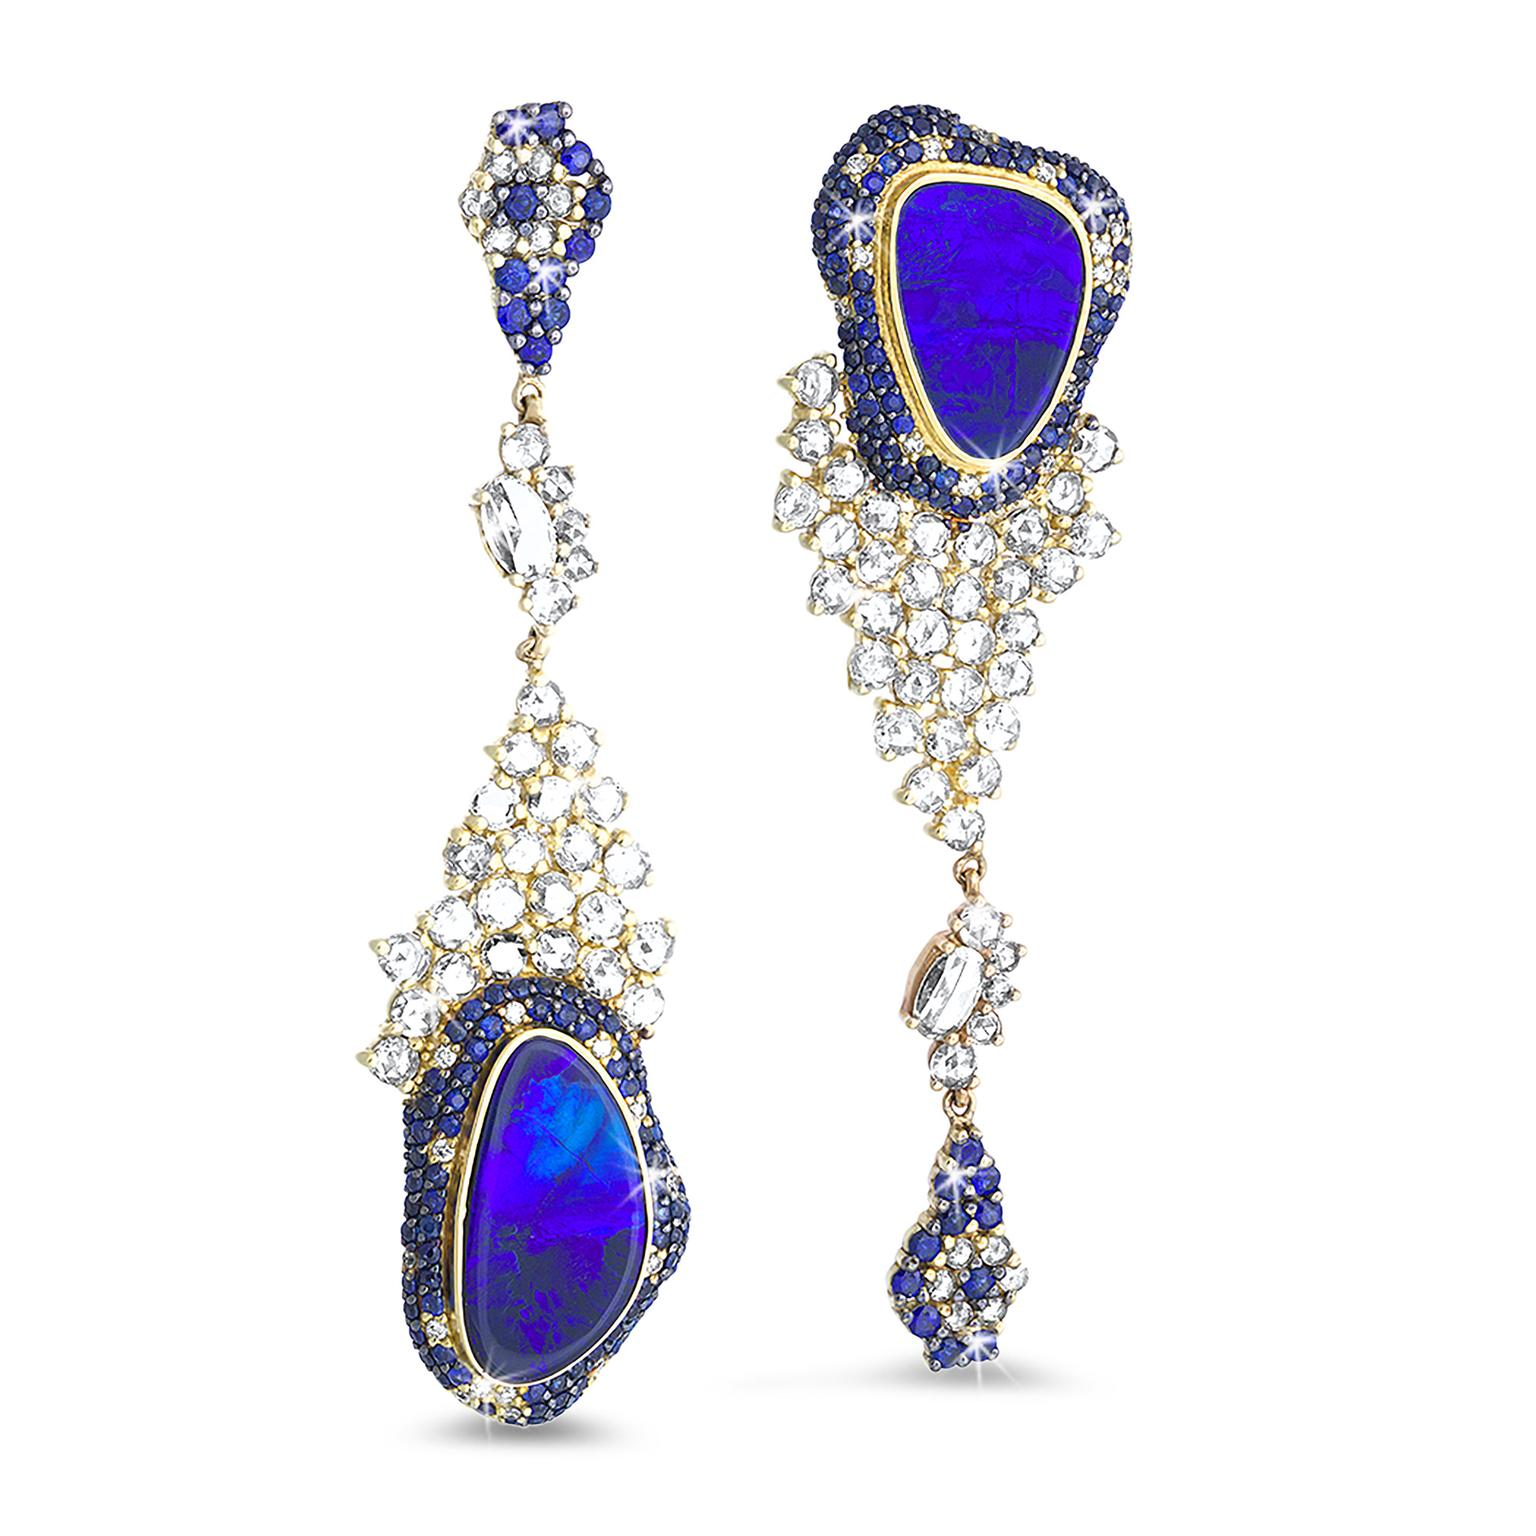 Michael John opal earrings